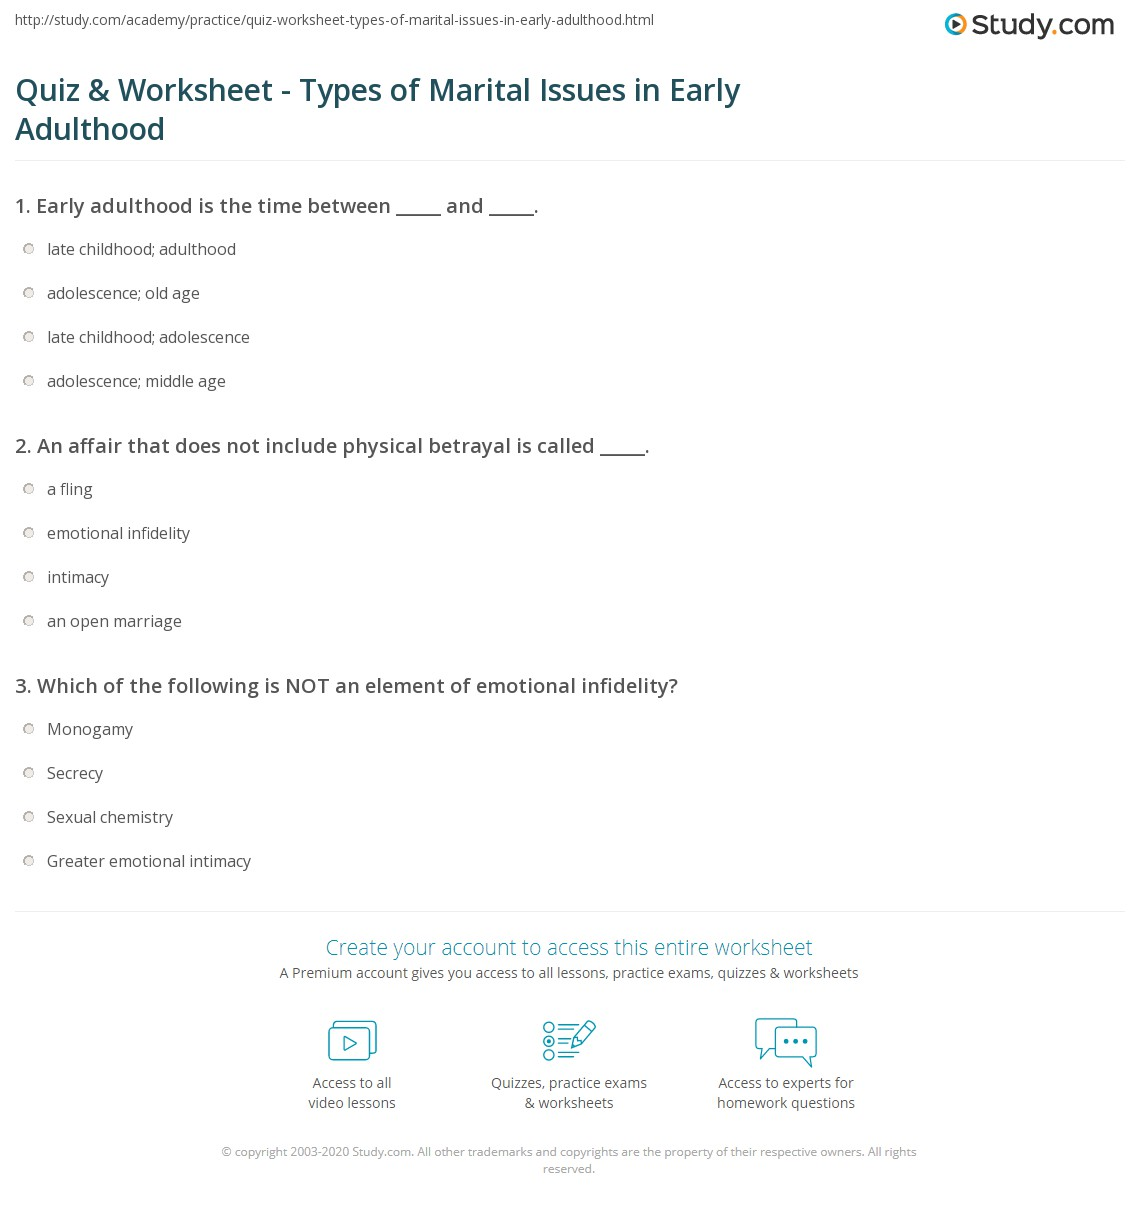 Quiz & Worksheet - Types of Marital Issues in Early Adulthood